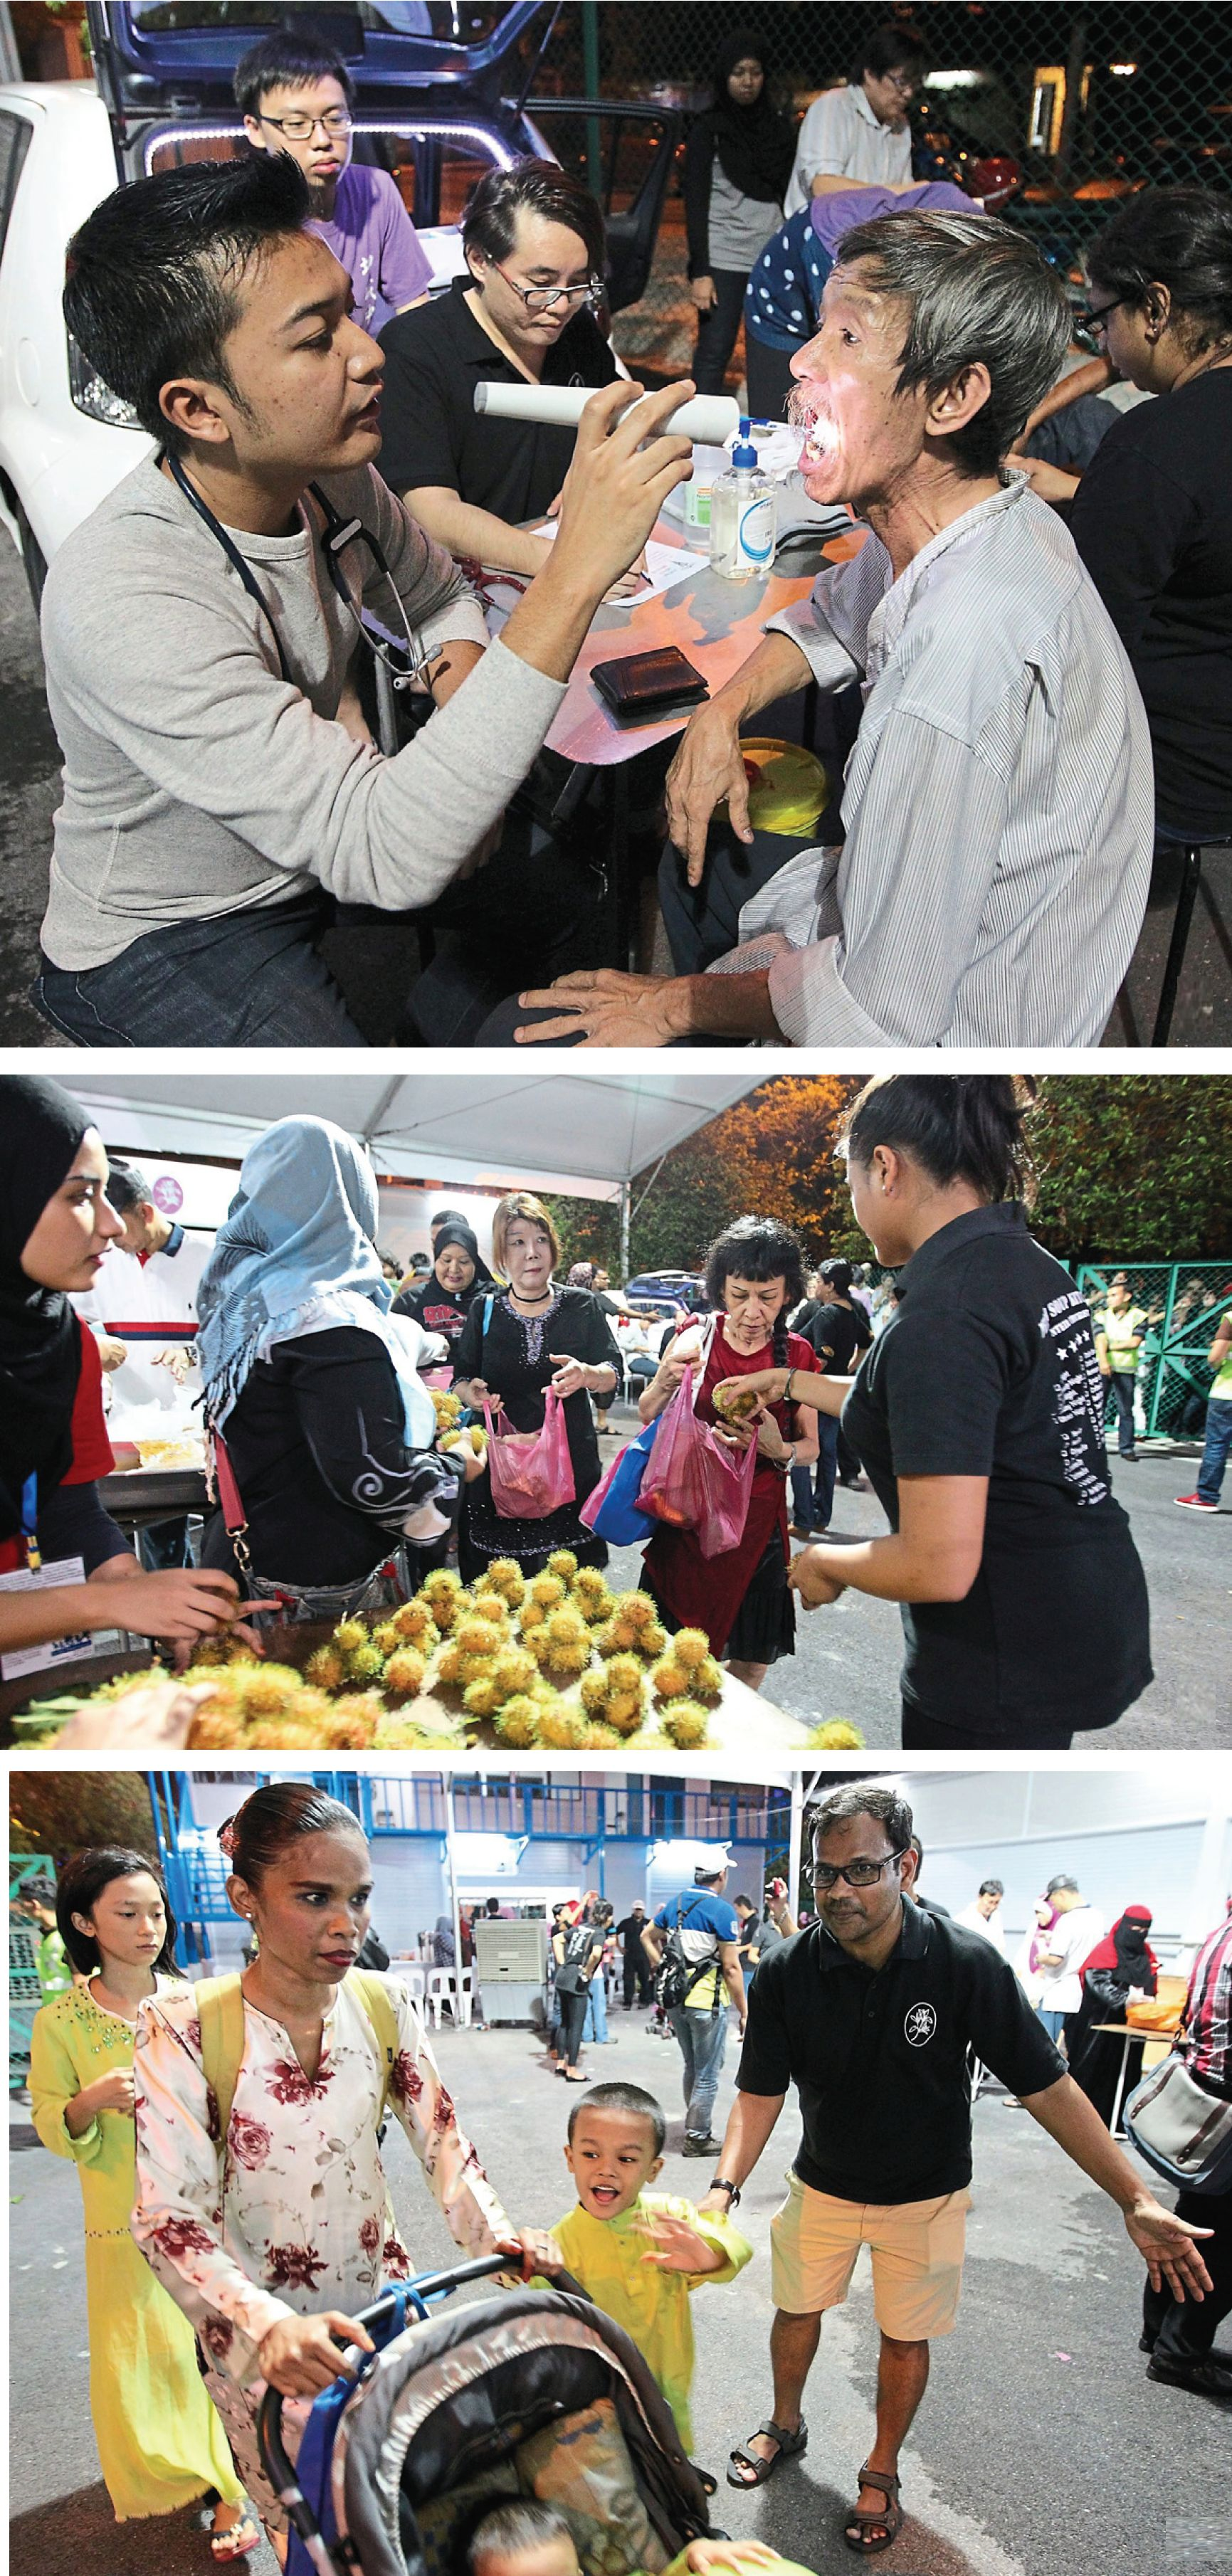 (From top) Dr Mohd Khairul Anwar Adan (left) examining the health of a homeless person at the event. Seated opposite the man is Dr Tan; Pertiwi Soup Kitchen volunteers distributing rambutan to their guests; Barathi (right) ushering their street friends to the event.